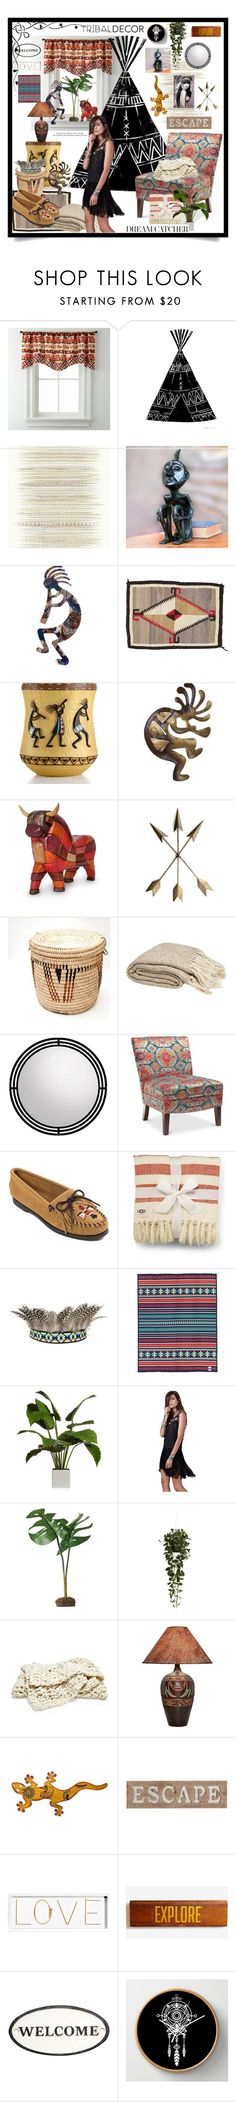 """Tribal Decor:Kokopelli"" by wuteringheights ❤ liked on Polyvore featuring interior, interiors, interior design, home, home decor, interior decorating, Élitis, NOVICA, Avanti and Minnetonka"